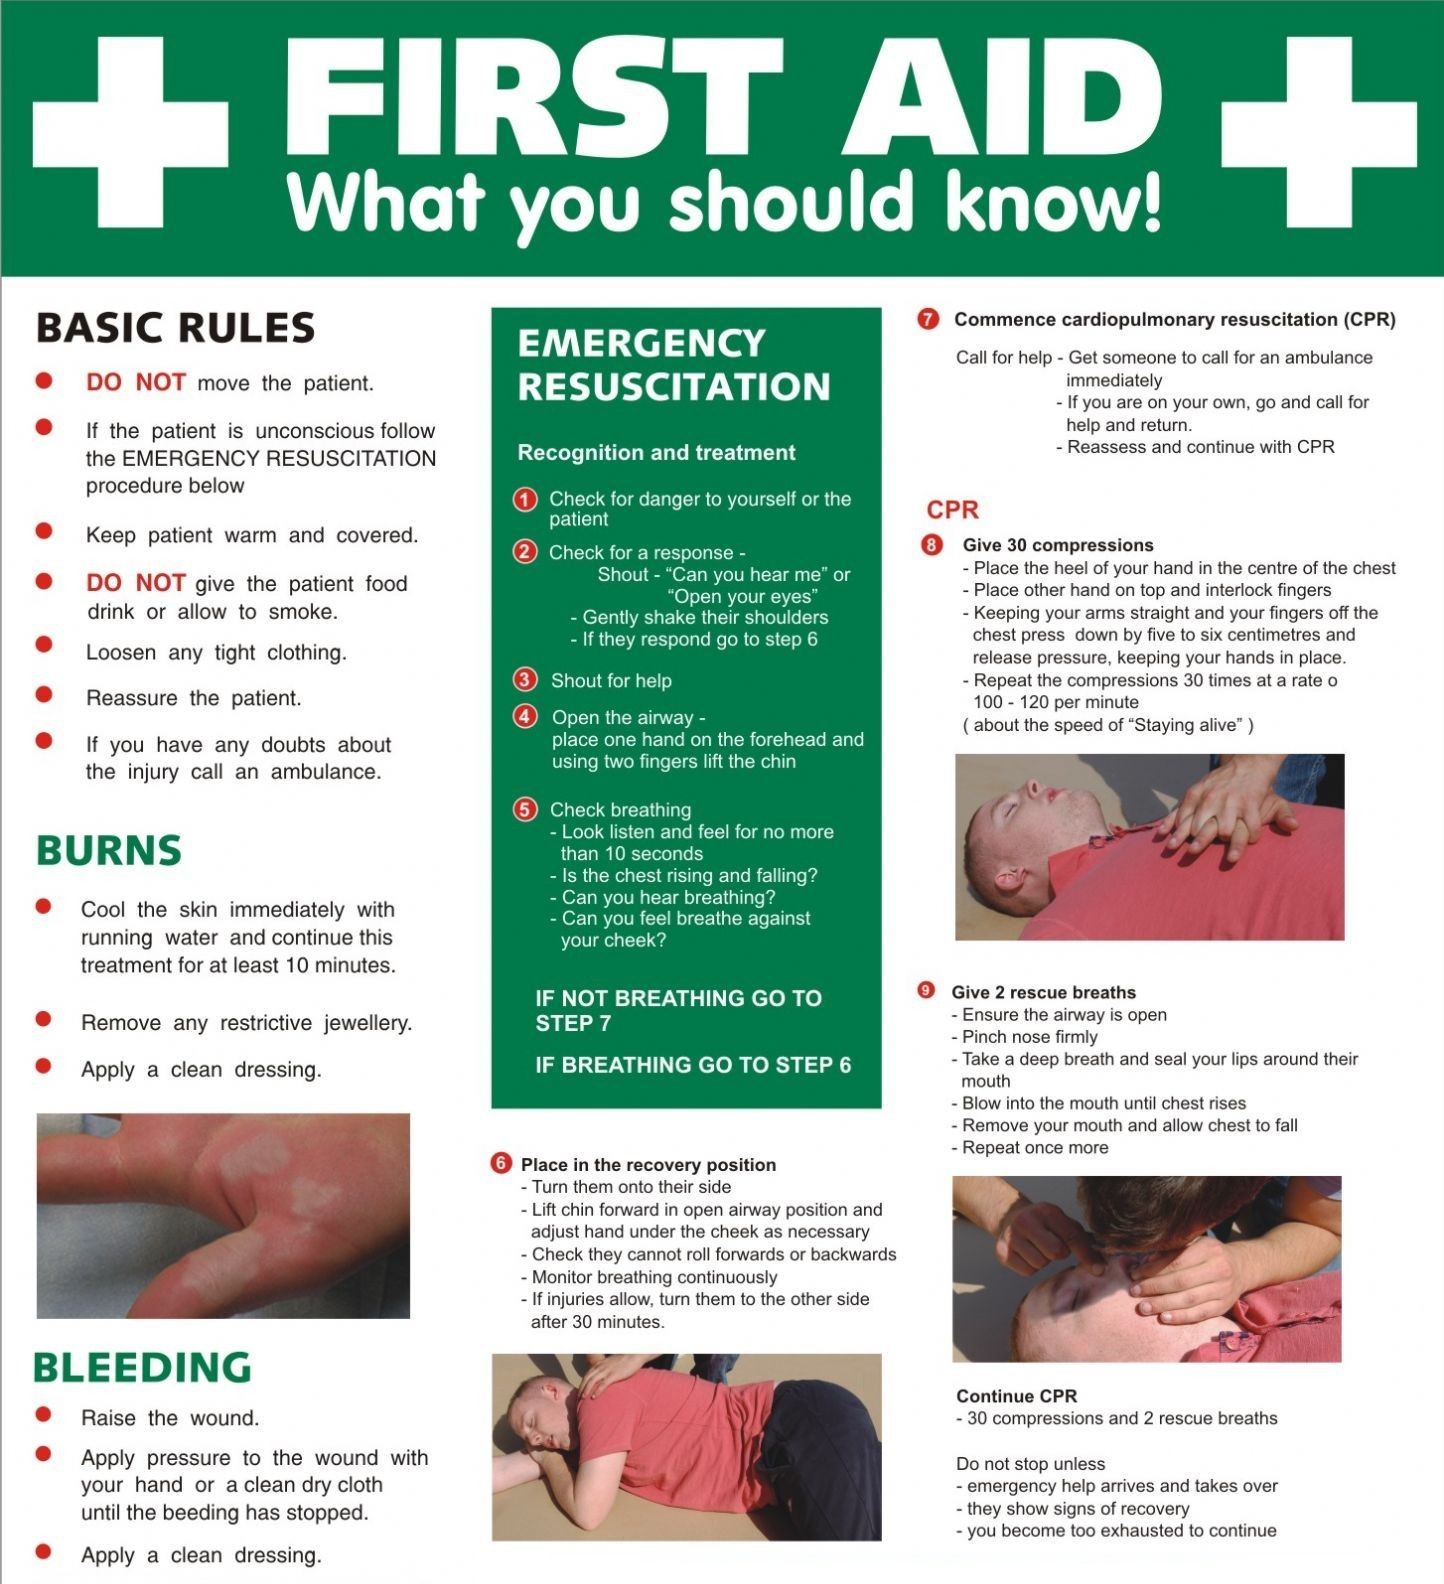 What You Should Know First Aid Safety Awareness In Workplace Health And Safety Poster Health And Safety Safety Awareness